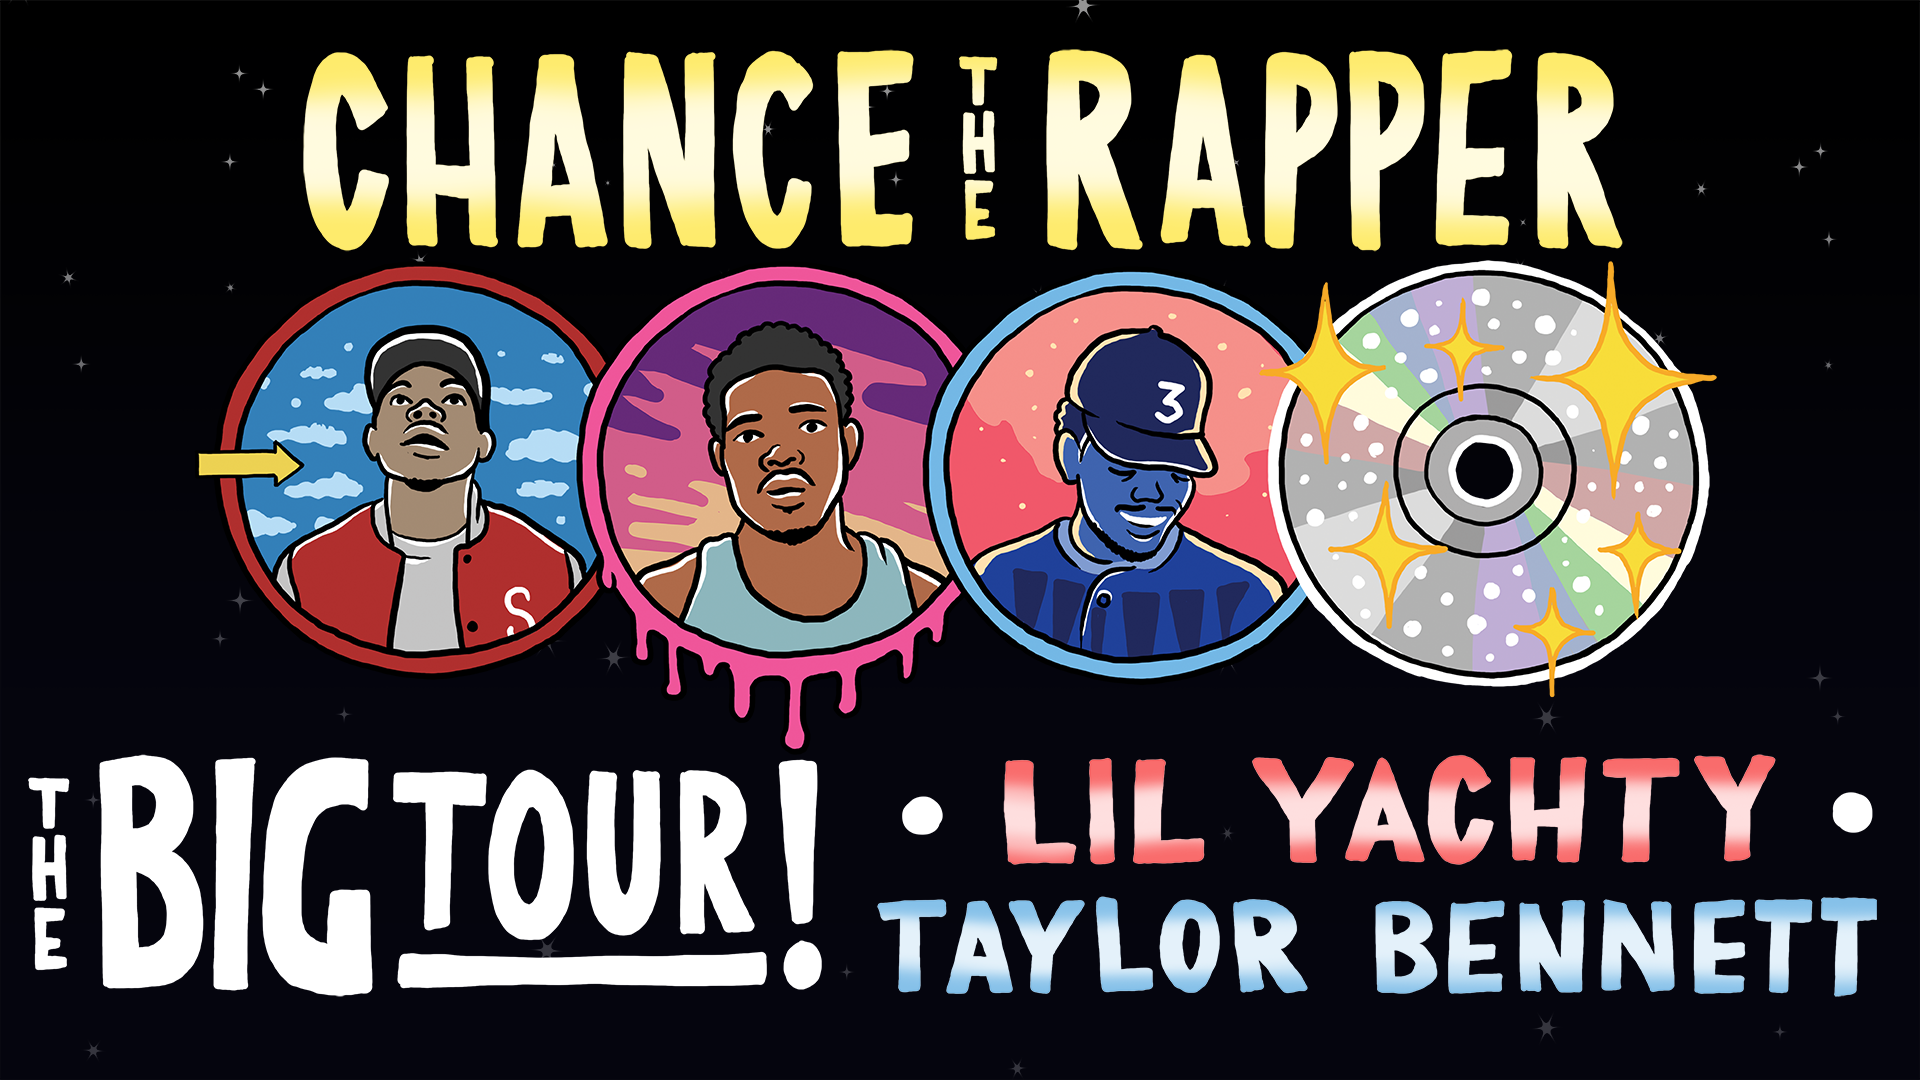 NEW DATE - Chance The Rapper - The Big Tour